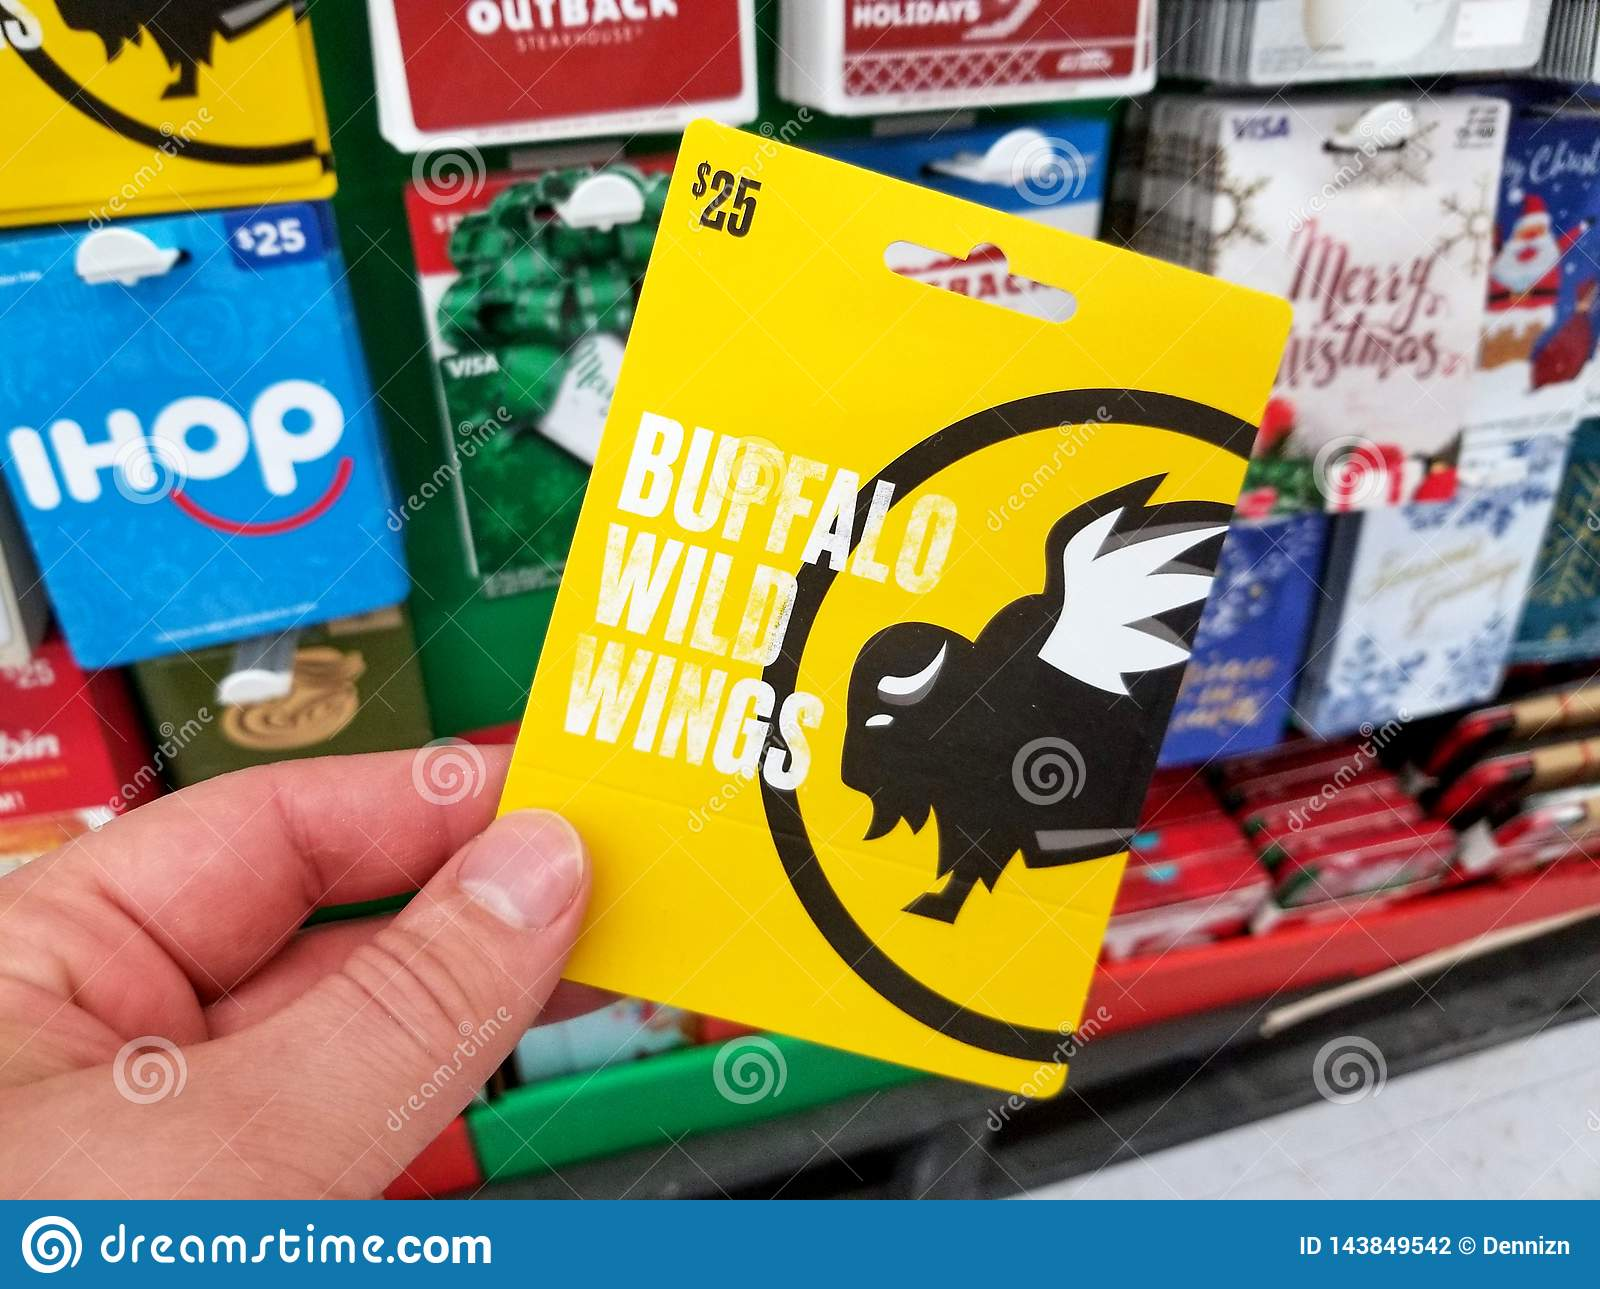 new arrivals c6424 8dc06 Buffalo Wild Wings Gift Card In A Hand Editorial Photography ...